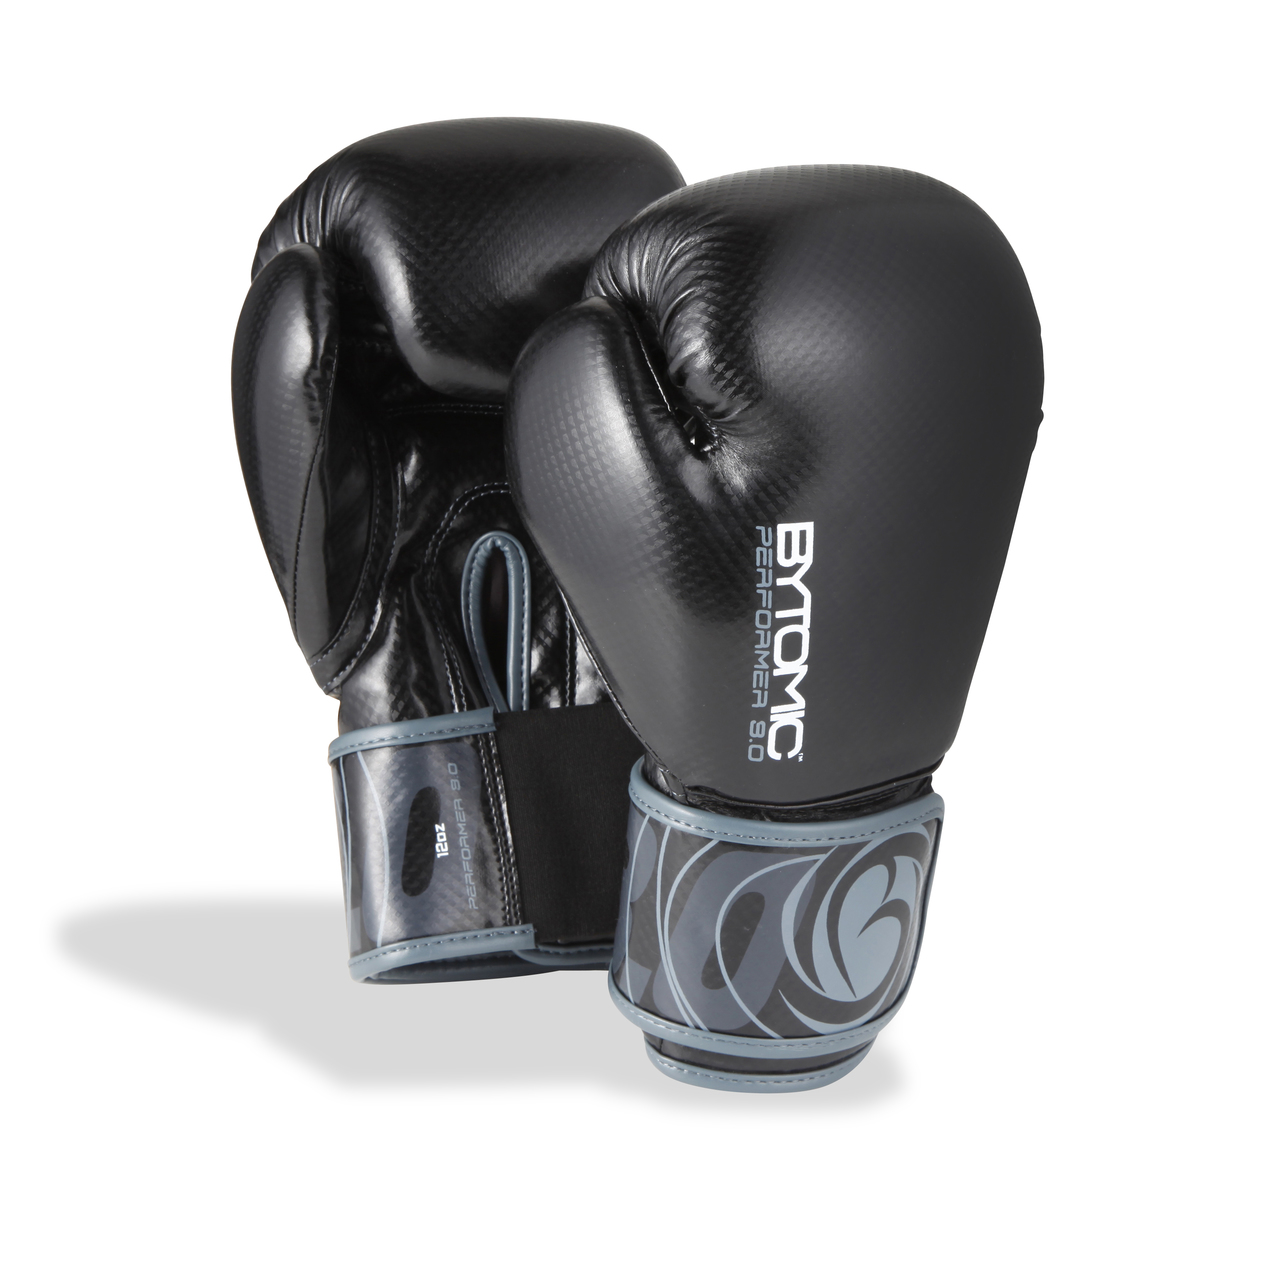 How to Choose the Best Boxing Gloves for Beginners - Made4Fighters